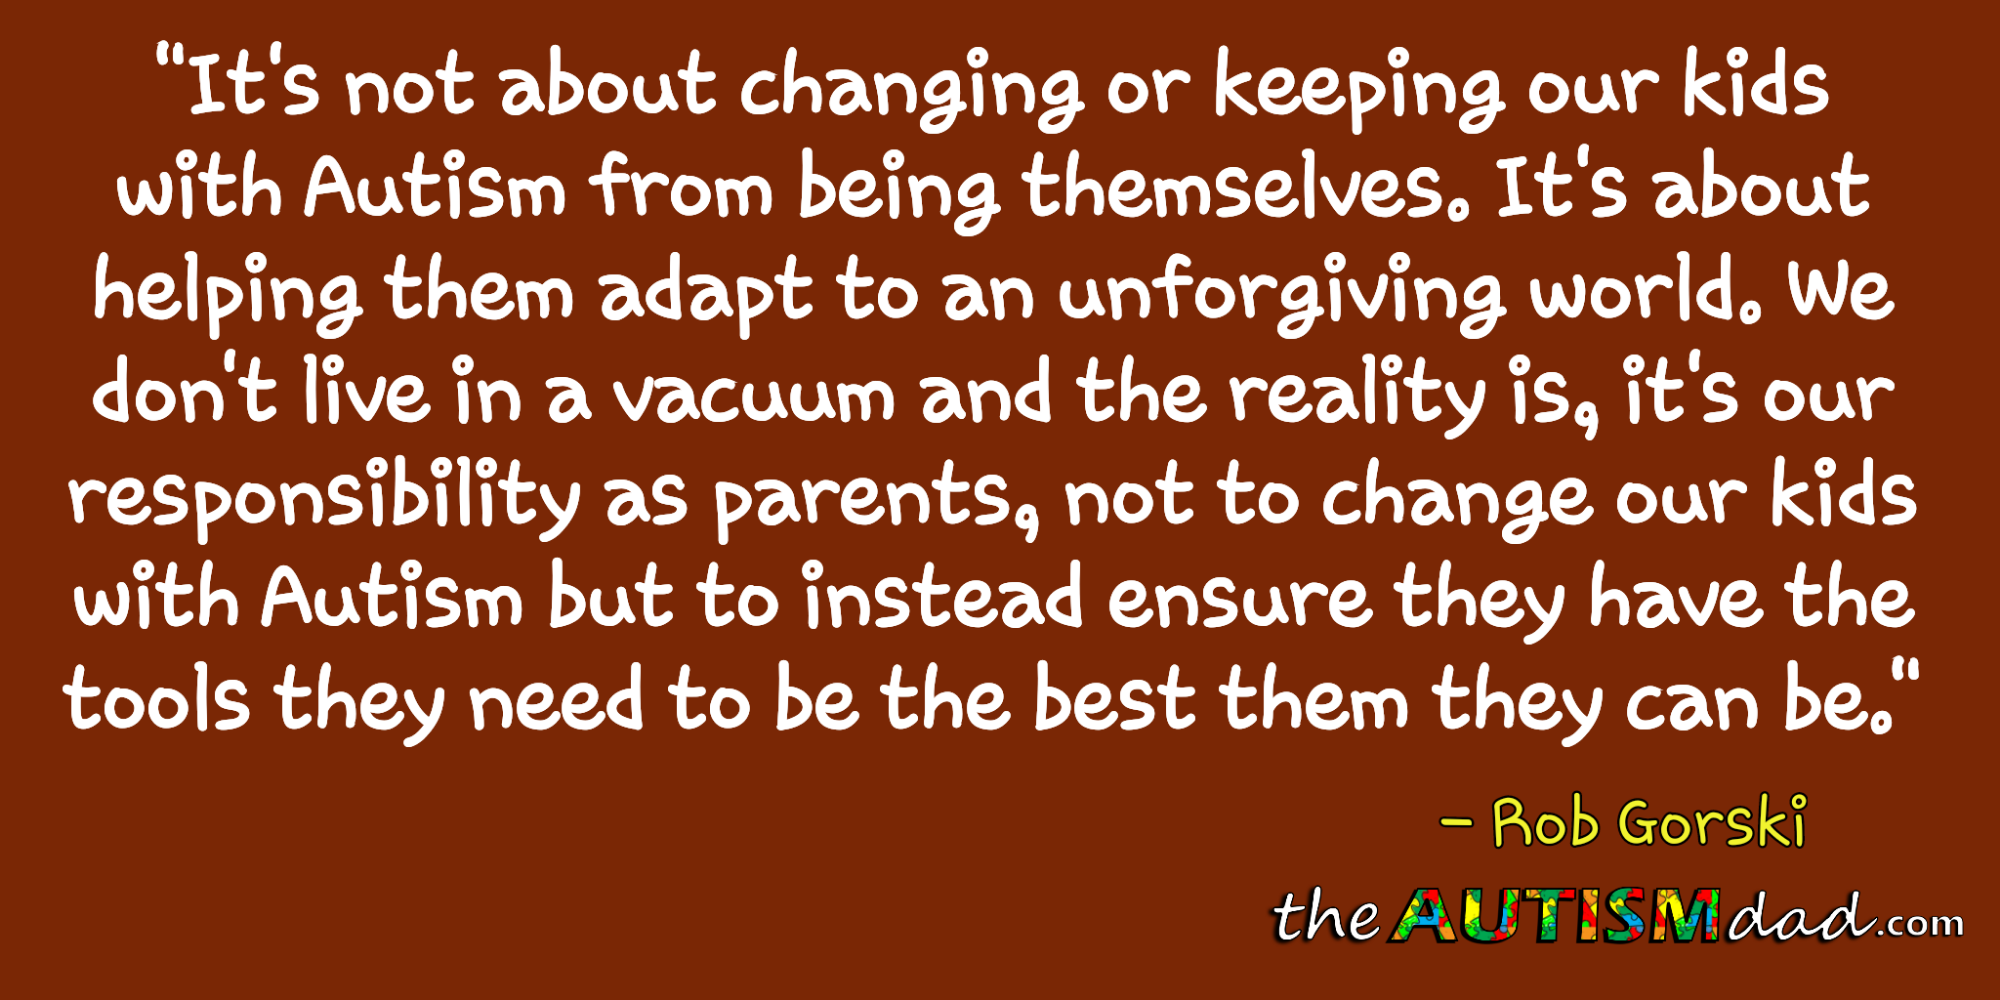 It's not about changing our kids with #Autism because we don't except them for who they are